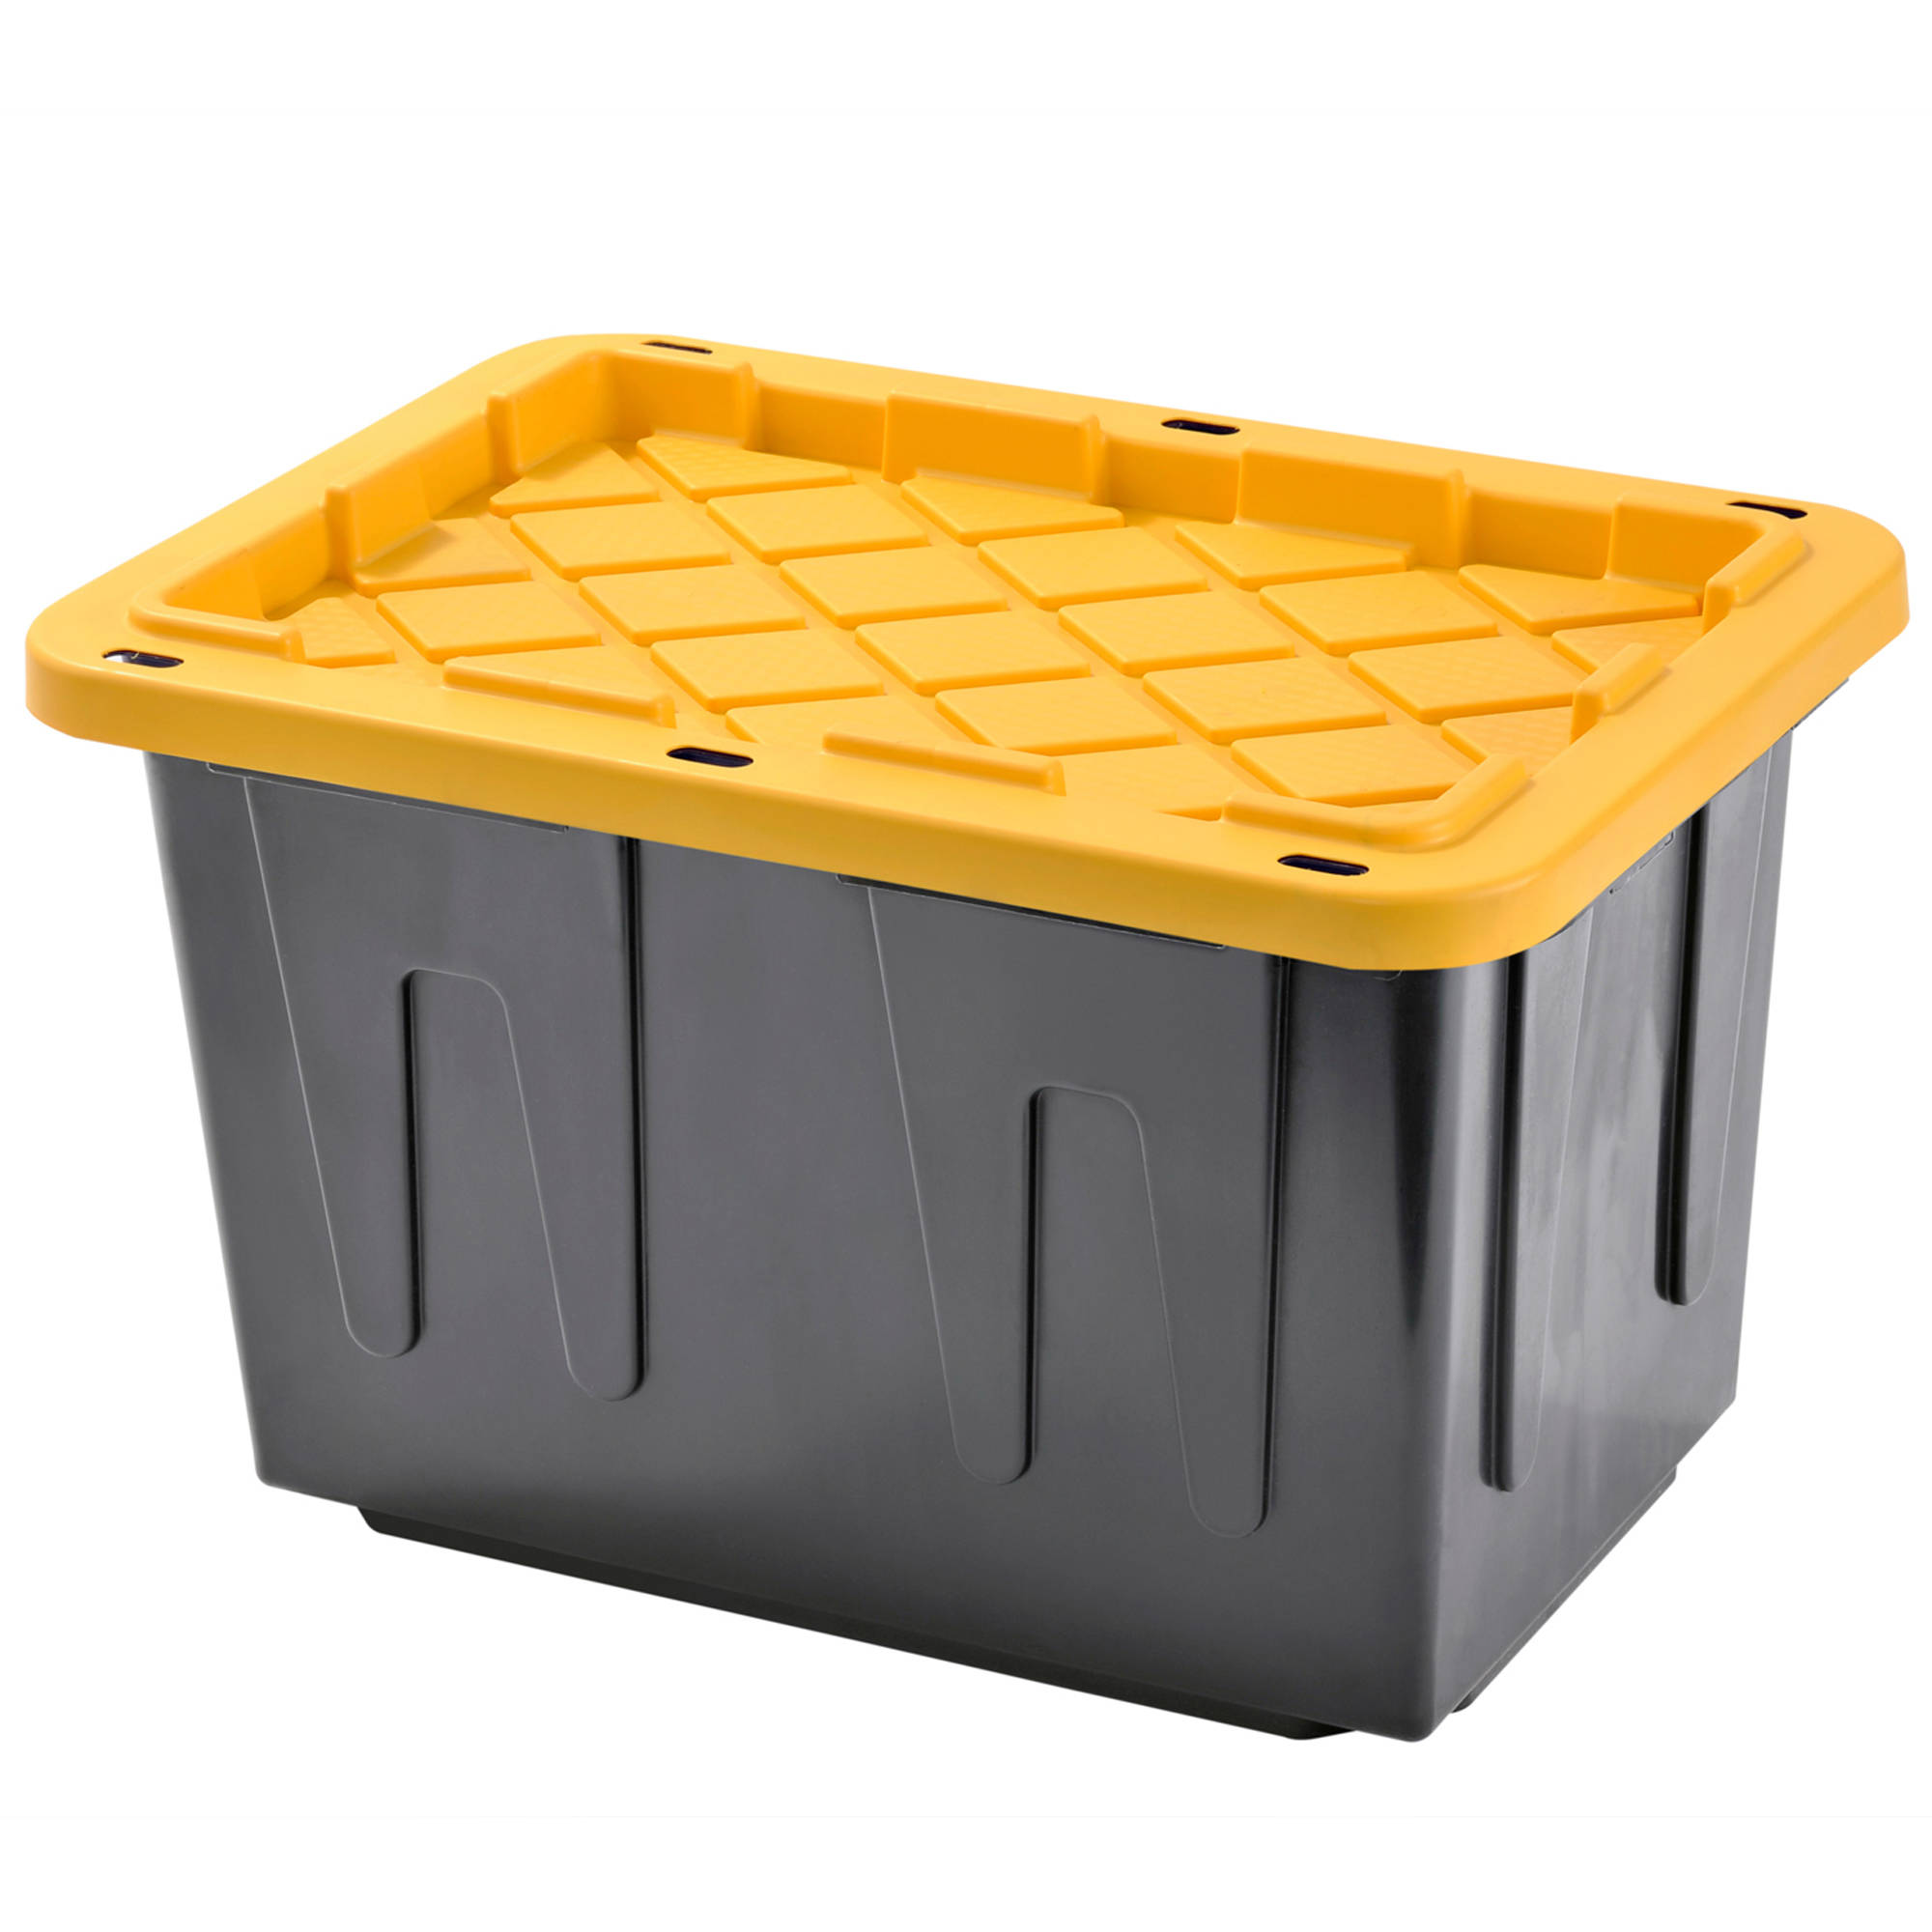 Plastic Heavy Duty Storage Tote Box, 23 Gallon, Black With Yellow Snap Lid, Stackable, 4-Pack ...